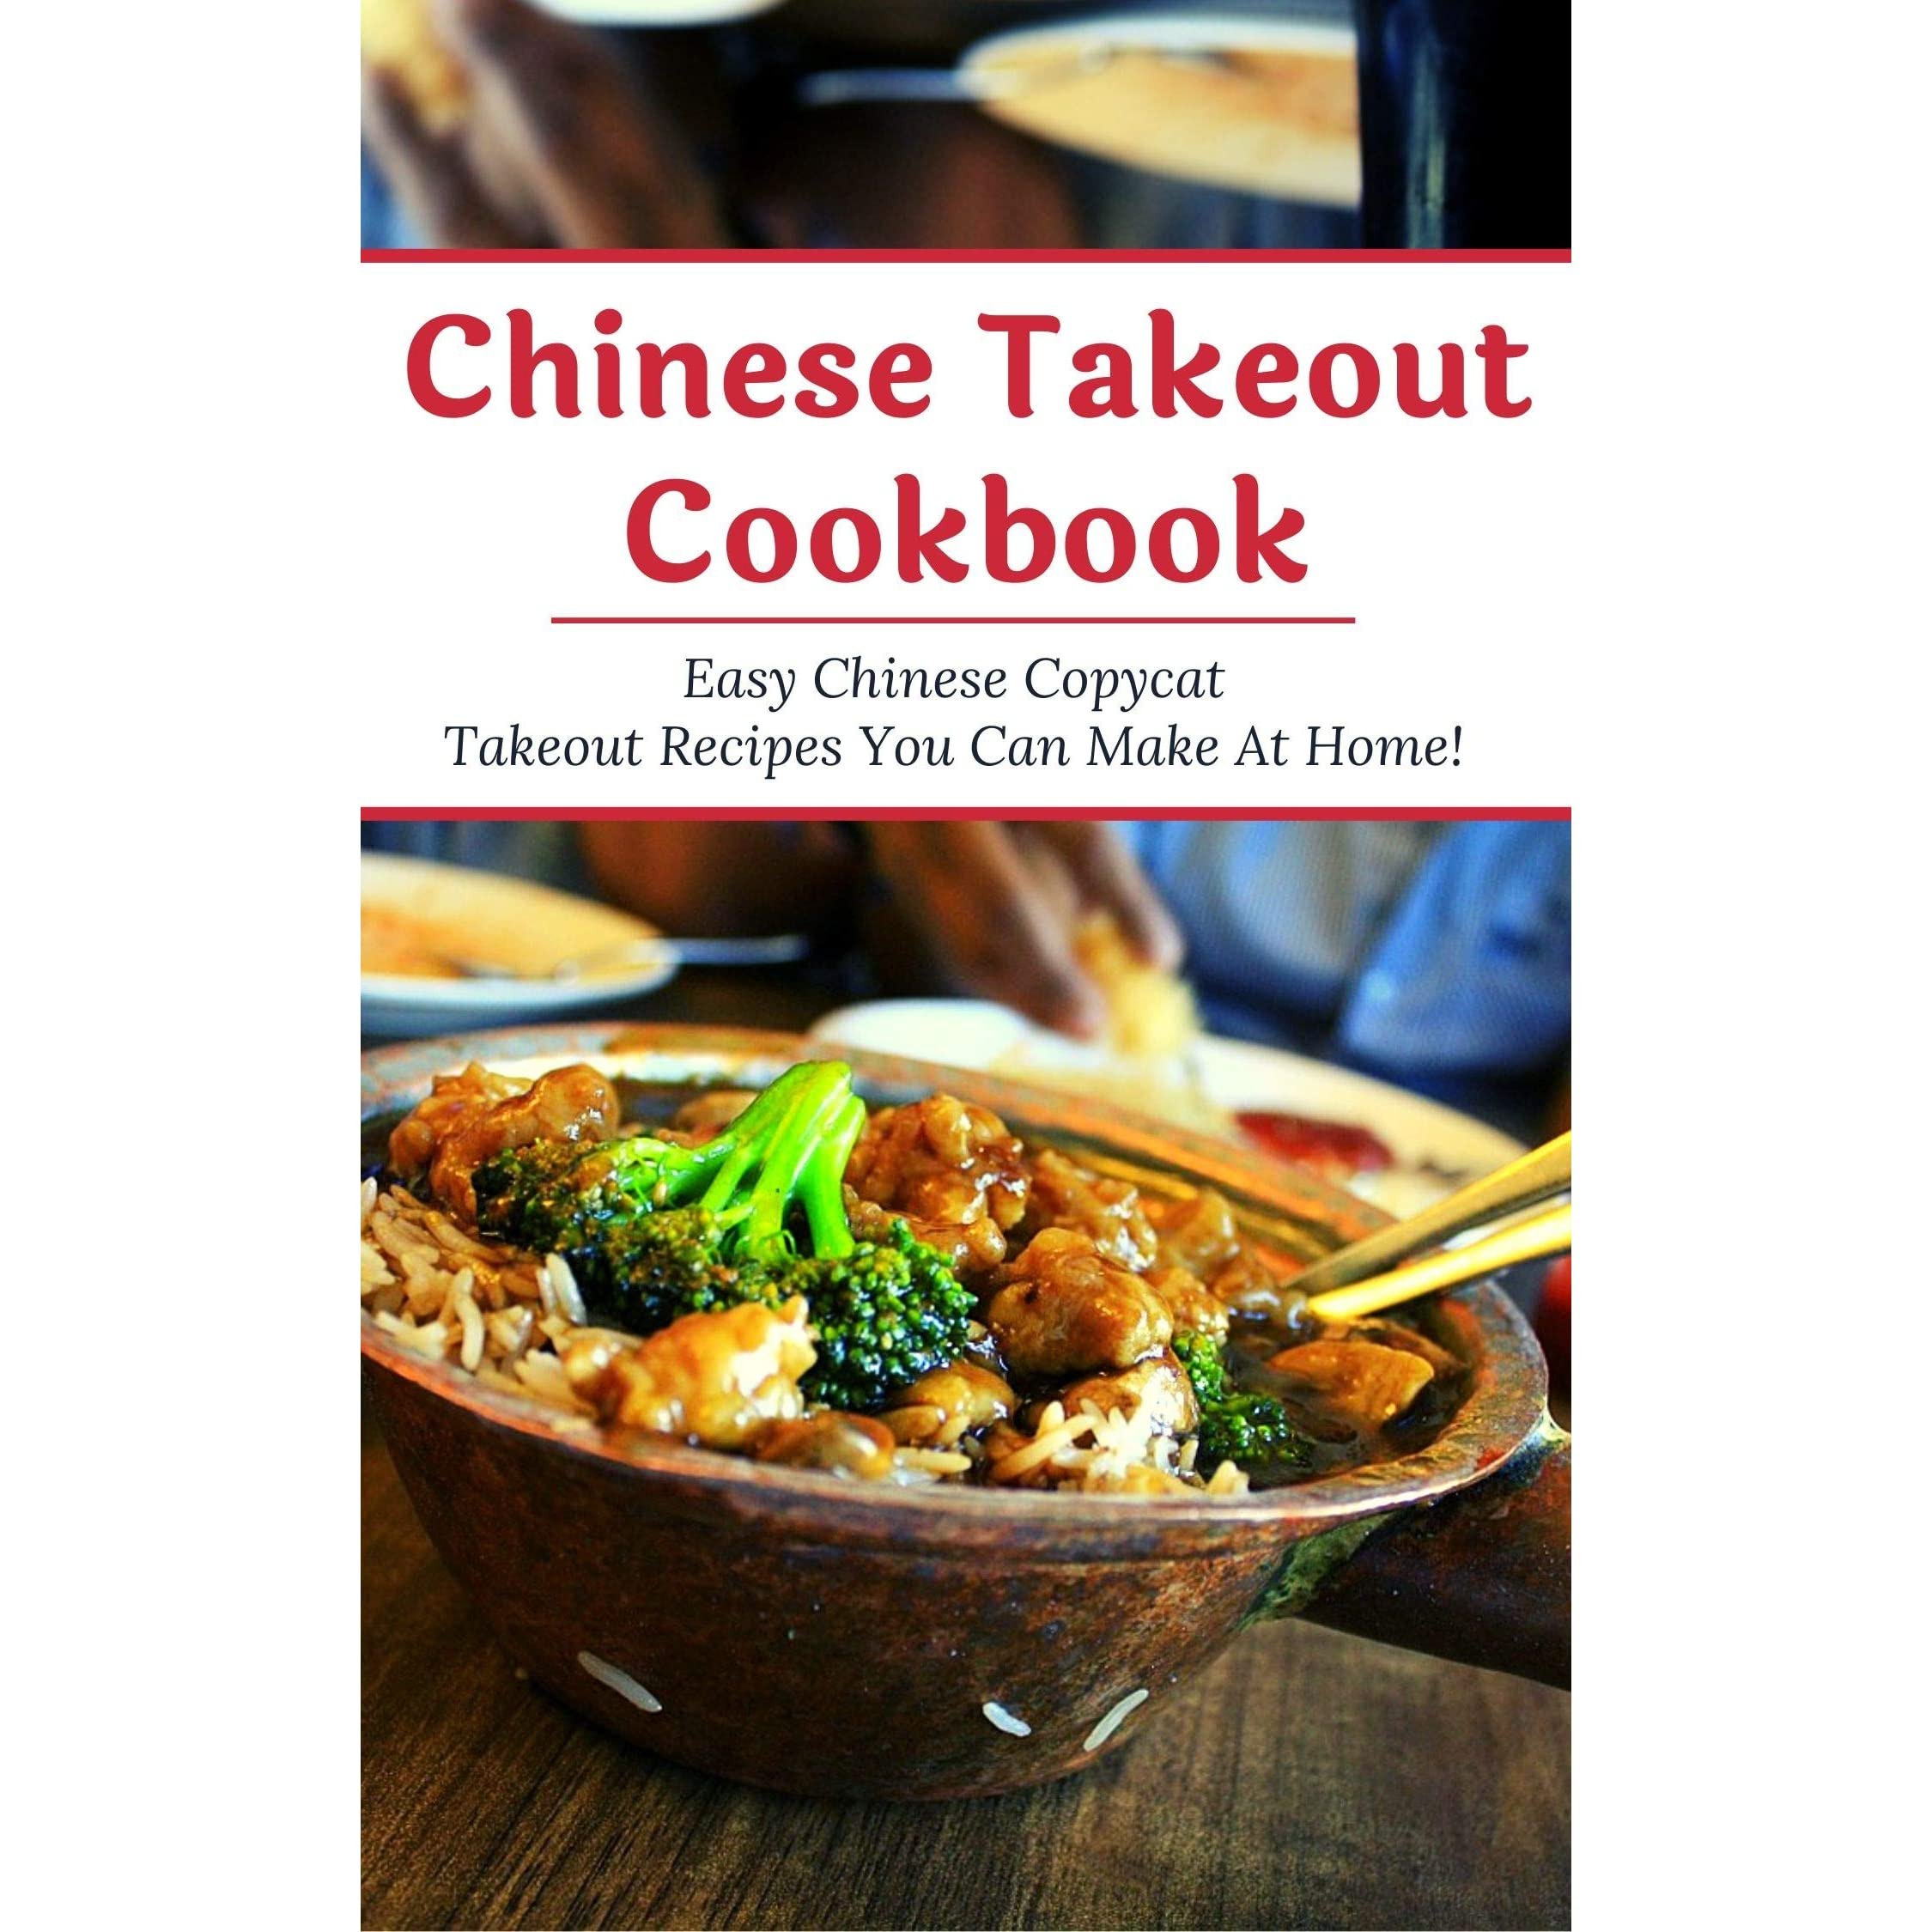 Chinese Takeout Cookbook Easy Chinese Copycat Takeout Recipes You Can Make At Home By Emily Chan